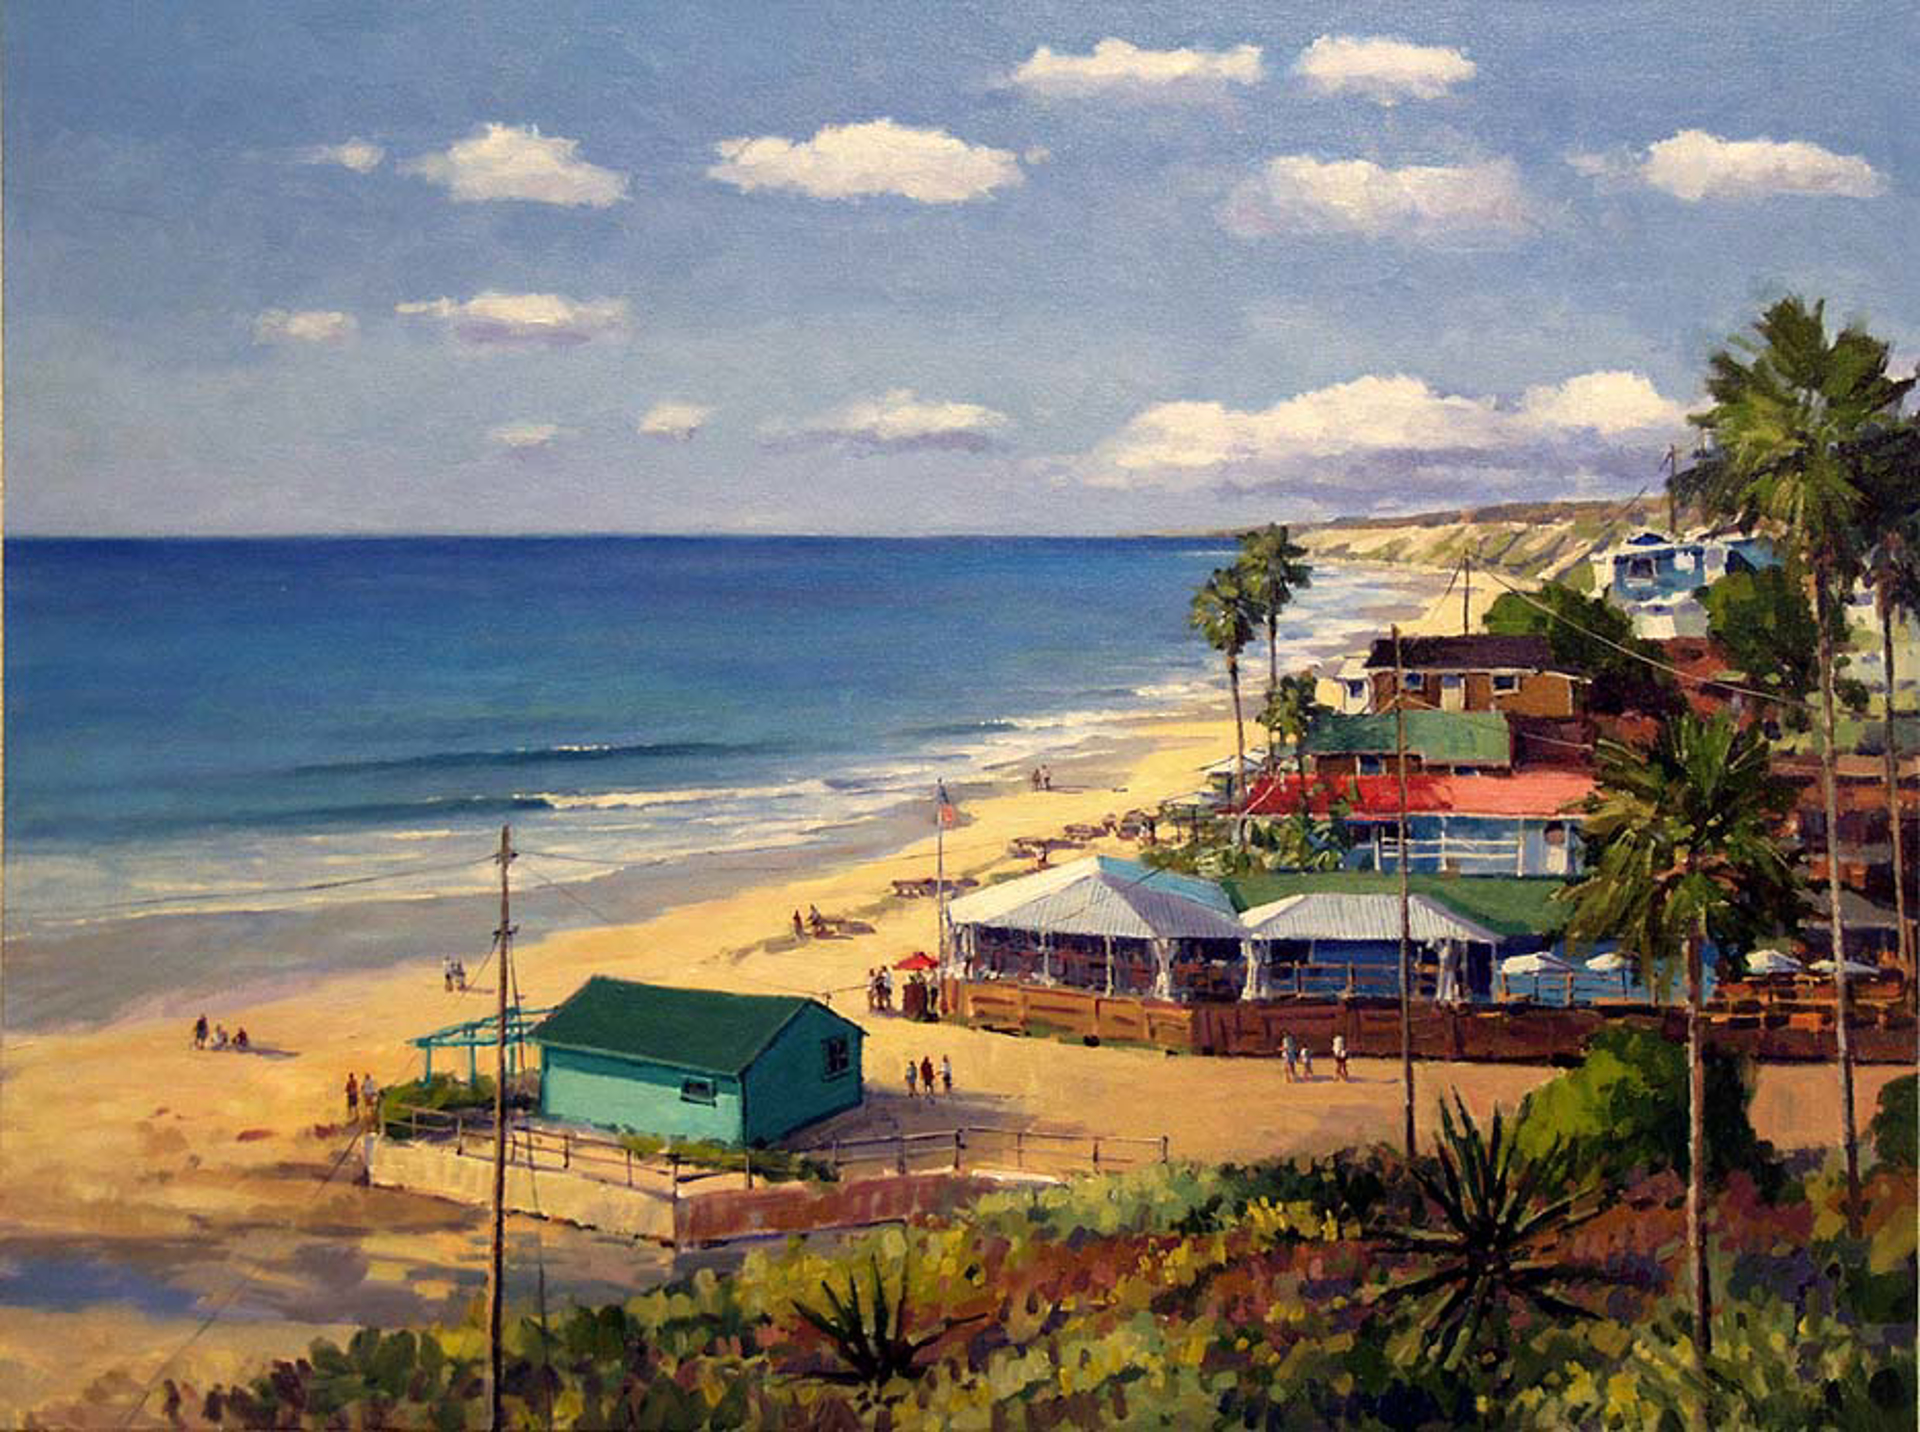 Summer Days - Crystal Cove by Ronaldo Macedo